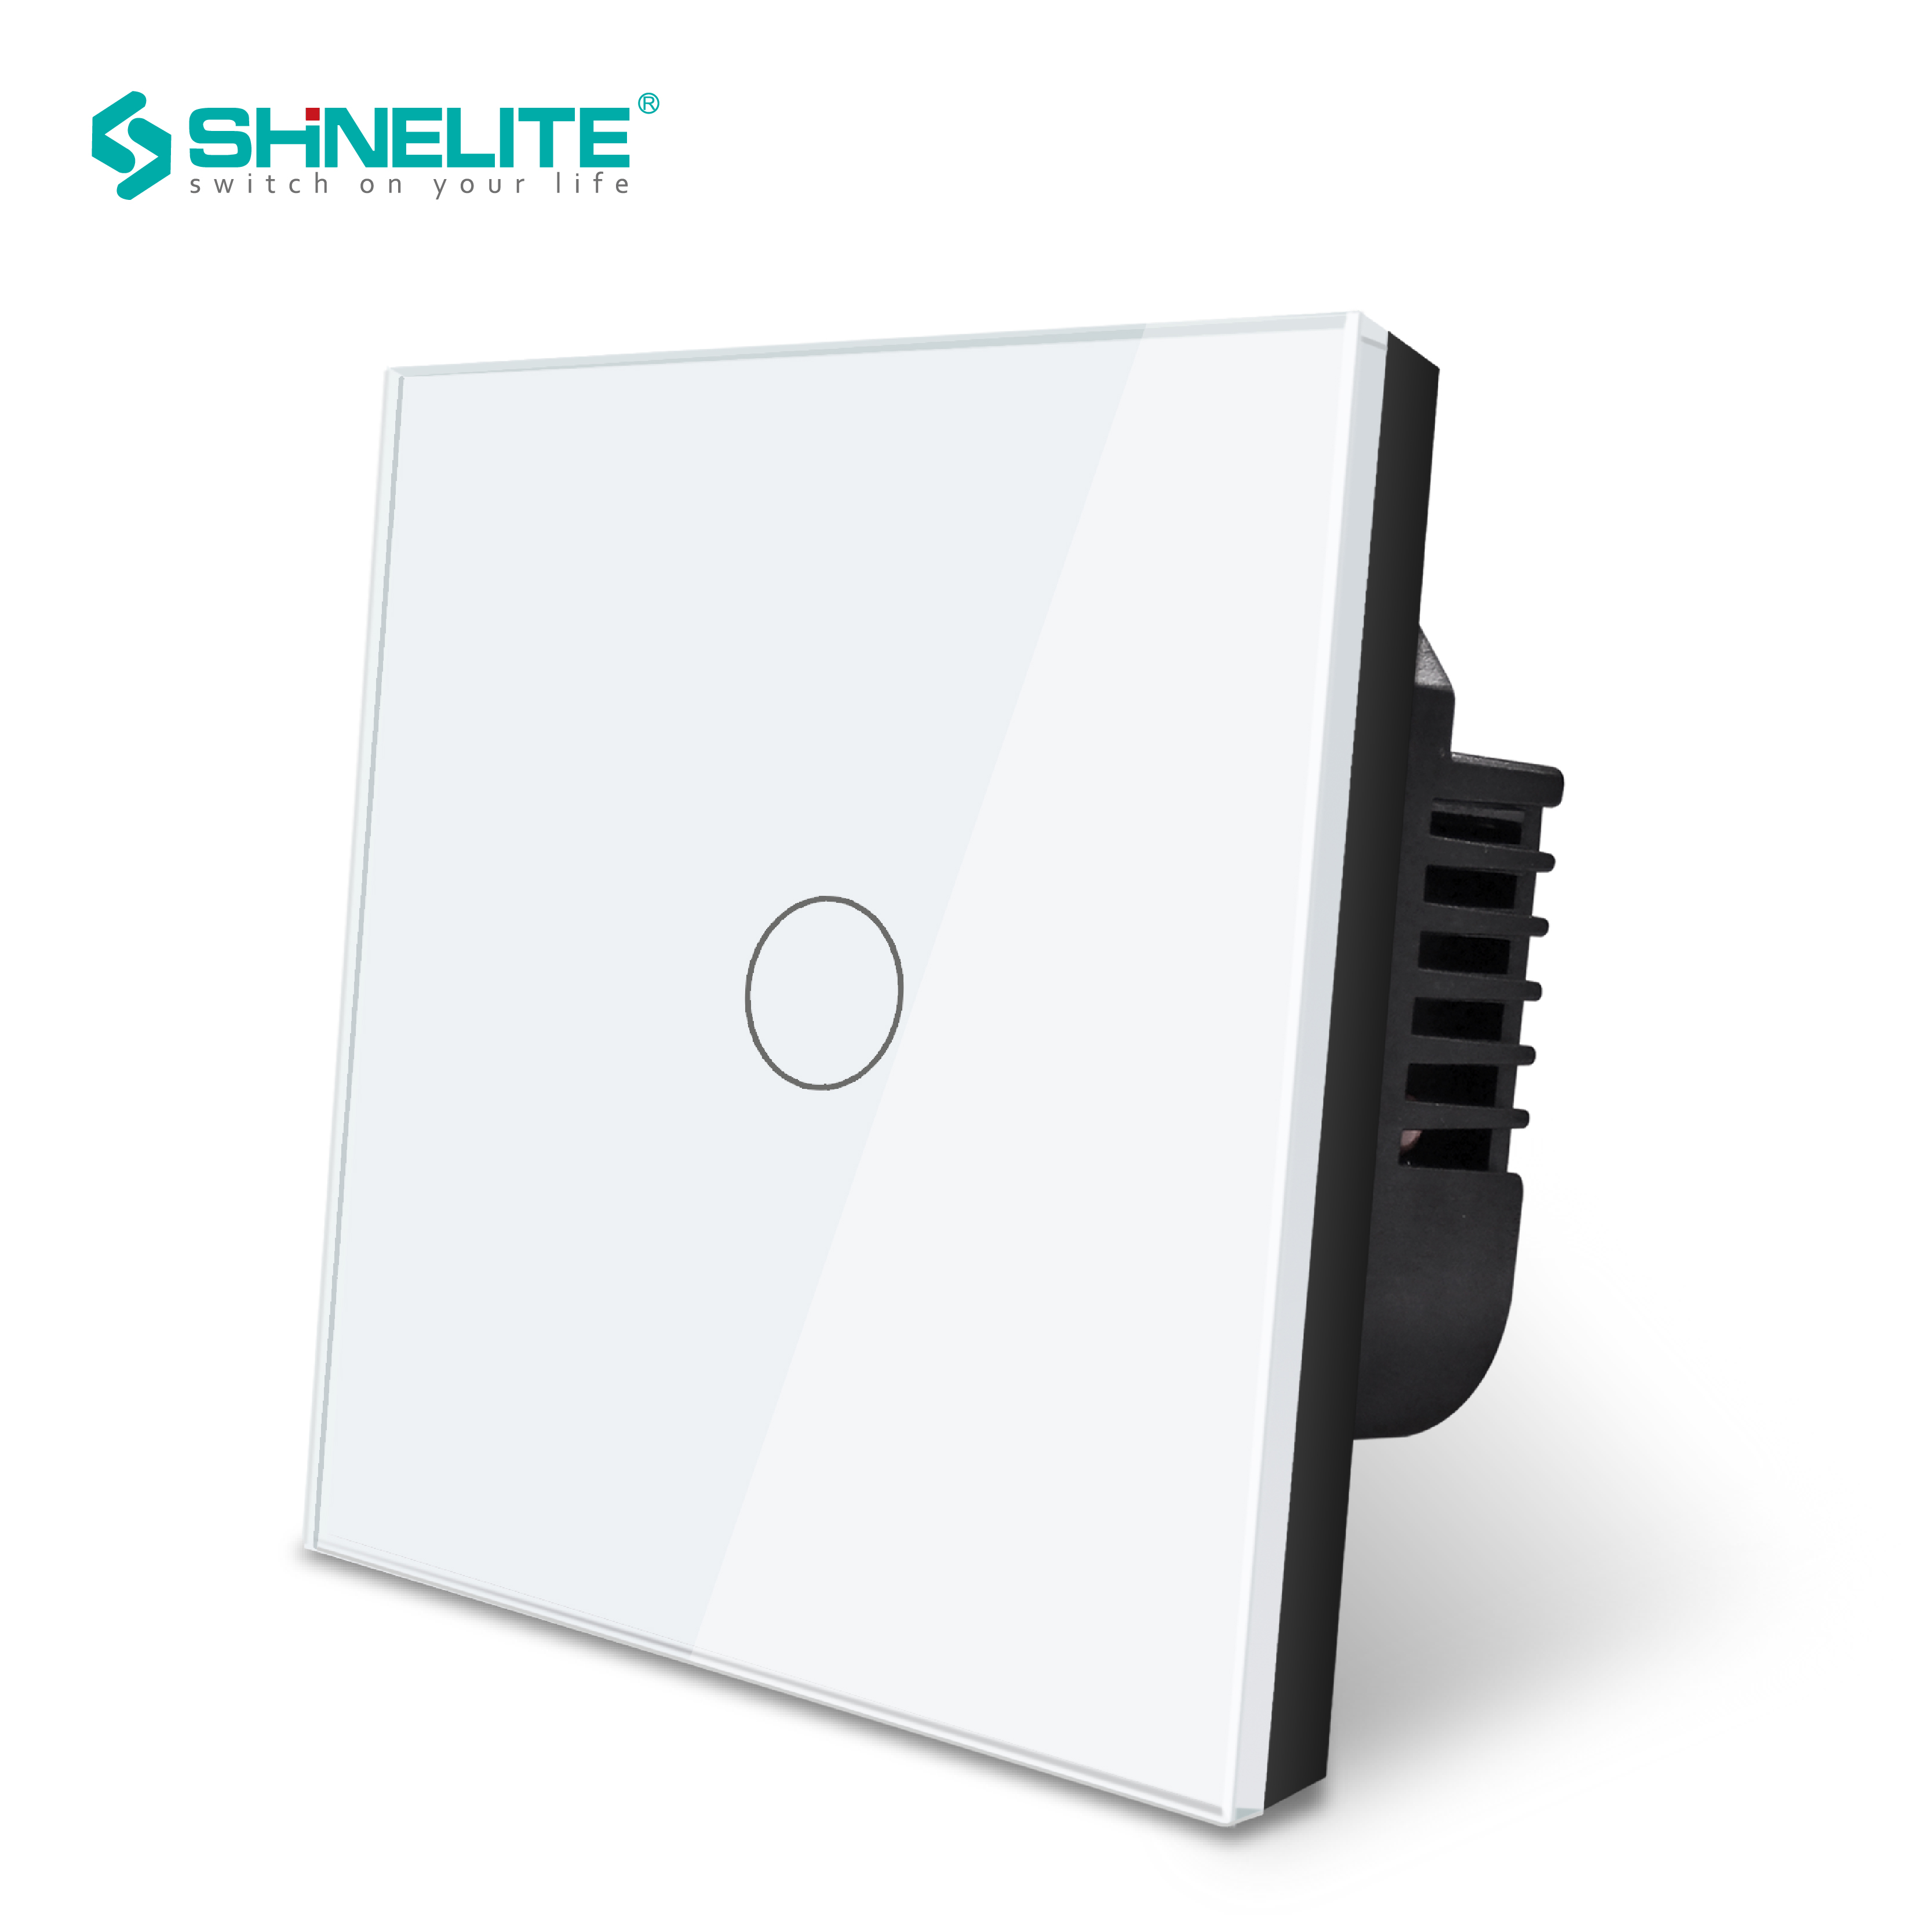 Us 9 6 40 Off Shinelite Uk Smart Wall Touch Light Switch 1 Gang 1way Model Sensor Electric For Lamp Interruptor In